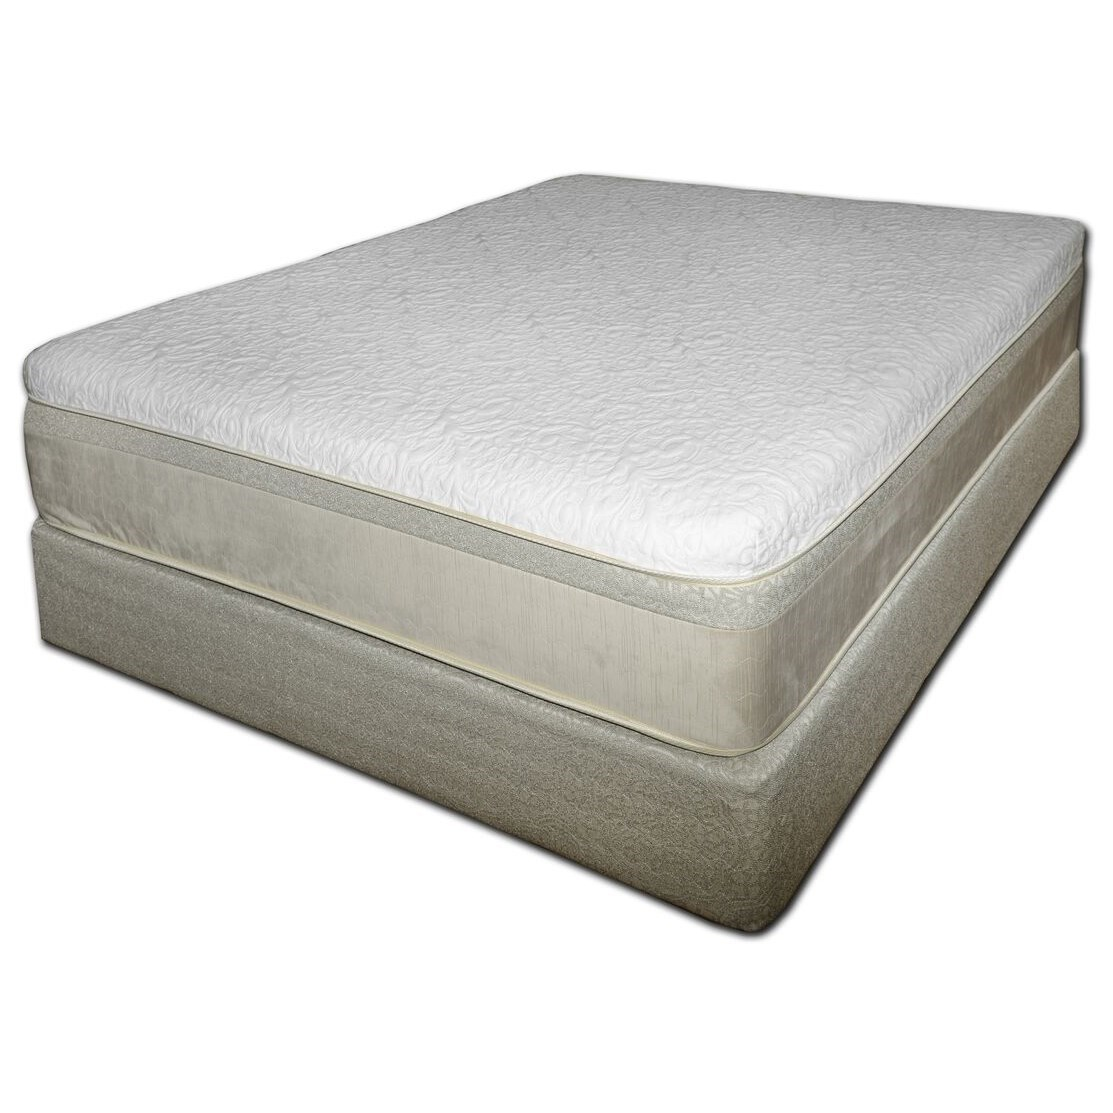 """Chattam and Wells Latex Core Full 11"""" Latex Mattress Set by Spring Air at Goods Furniture"""